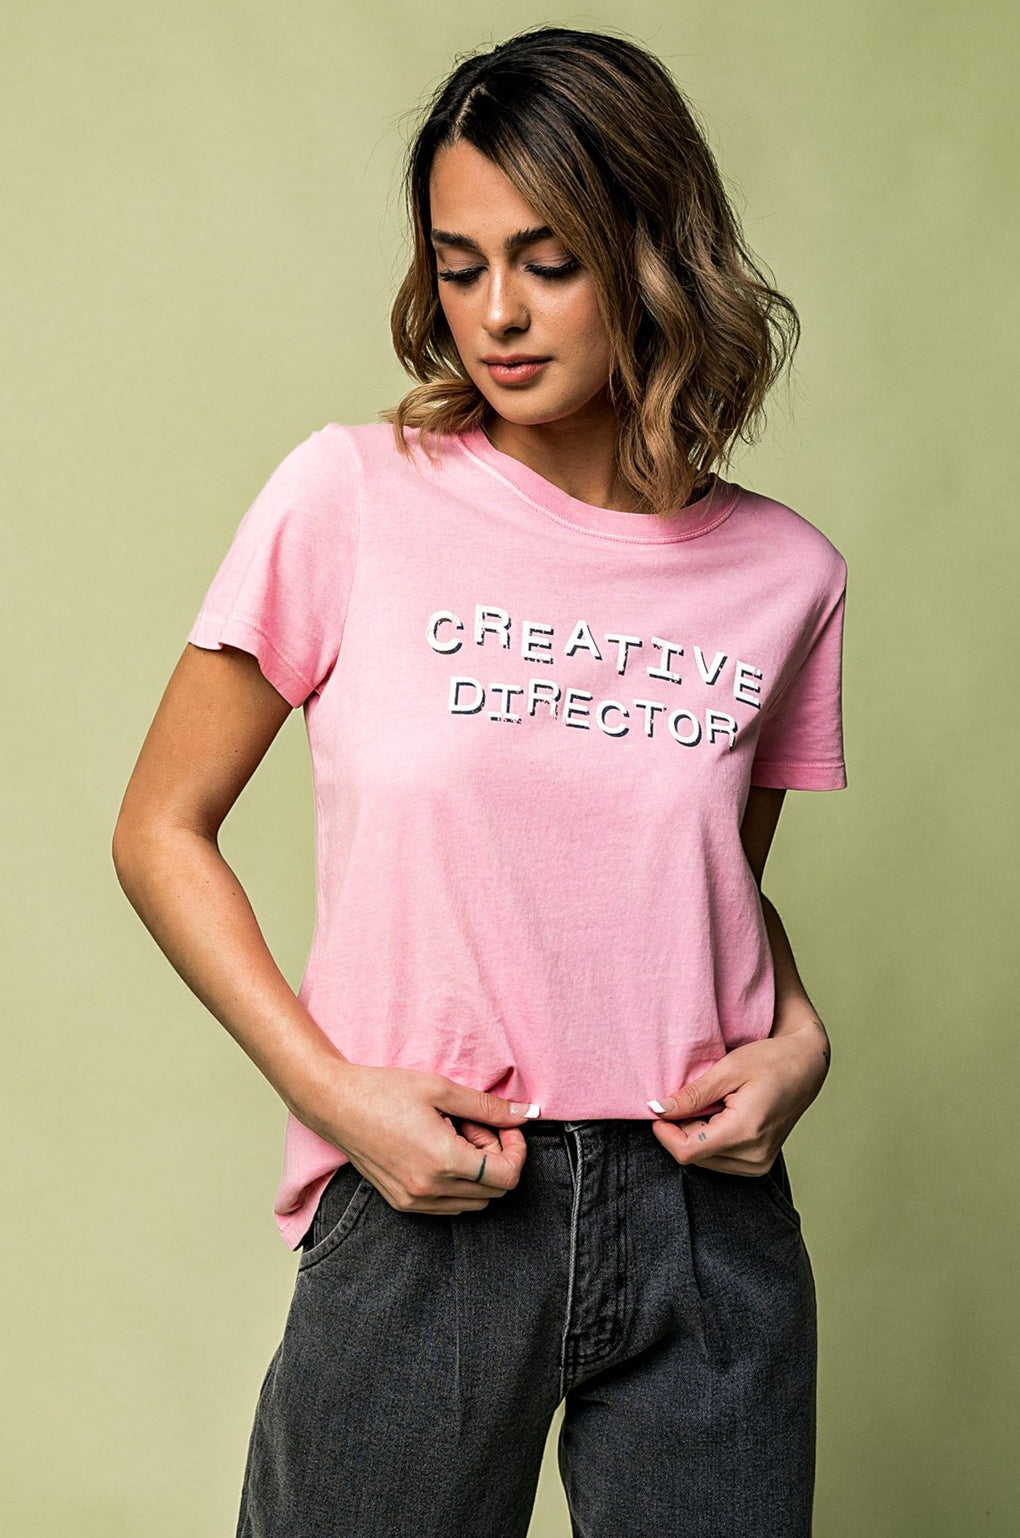 Creative Director Graphic Tee